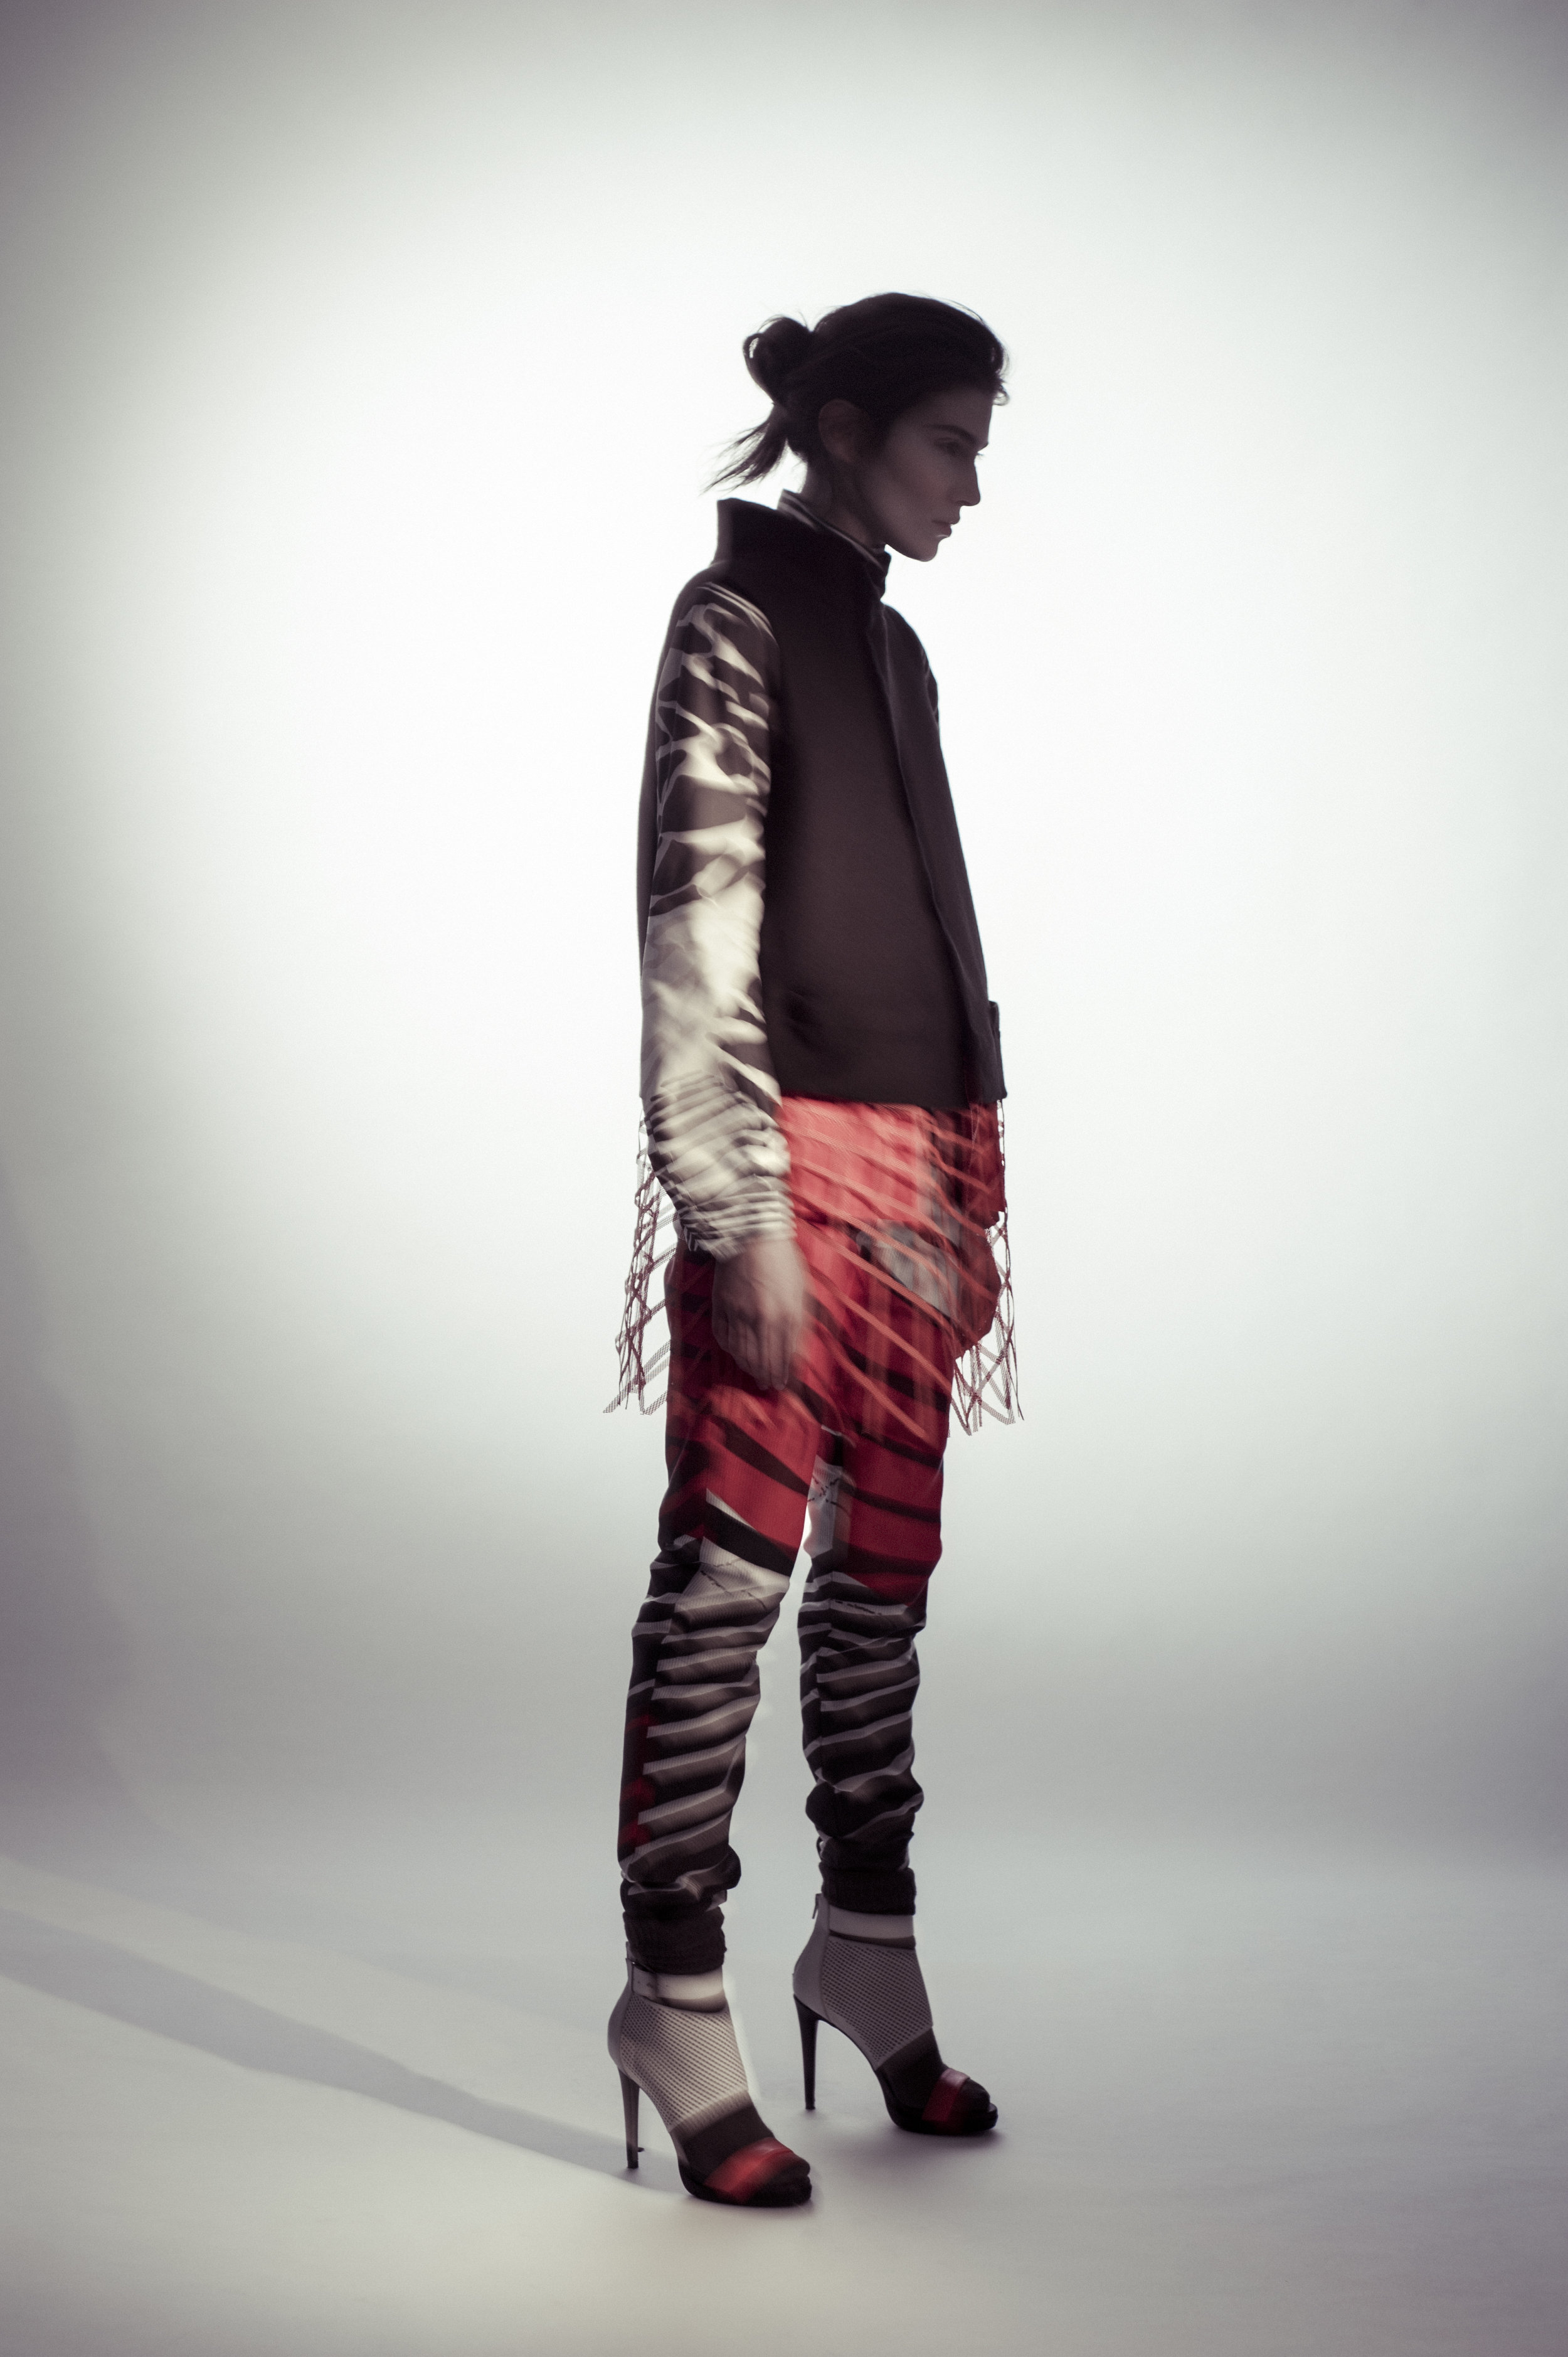 Vest, Shirt, and Pants by Ernest Huang, MFA Fashion Design, and Hong Ni, MFA Textile Design. Socks, stylist's own. Shoes, Aldo.